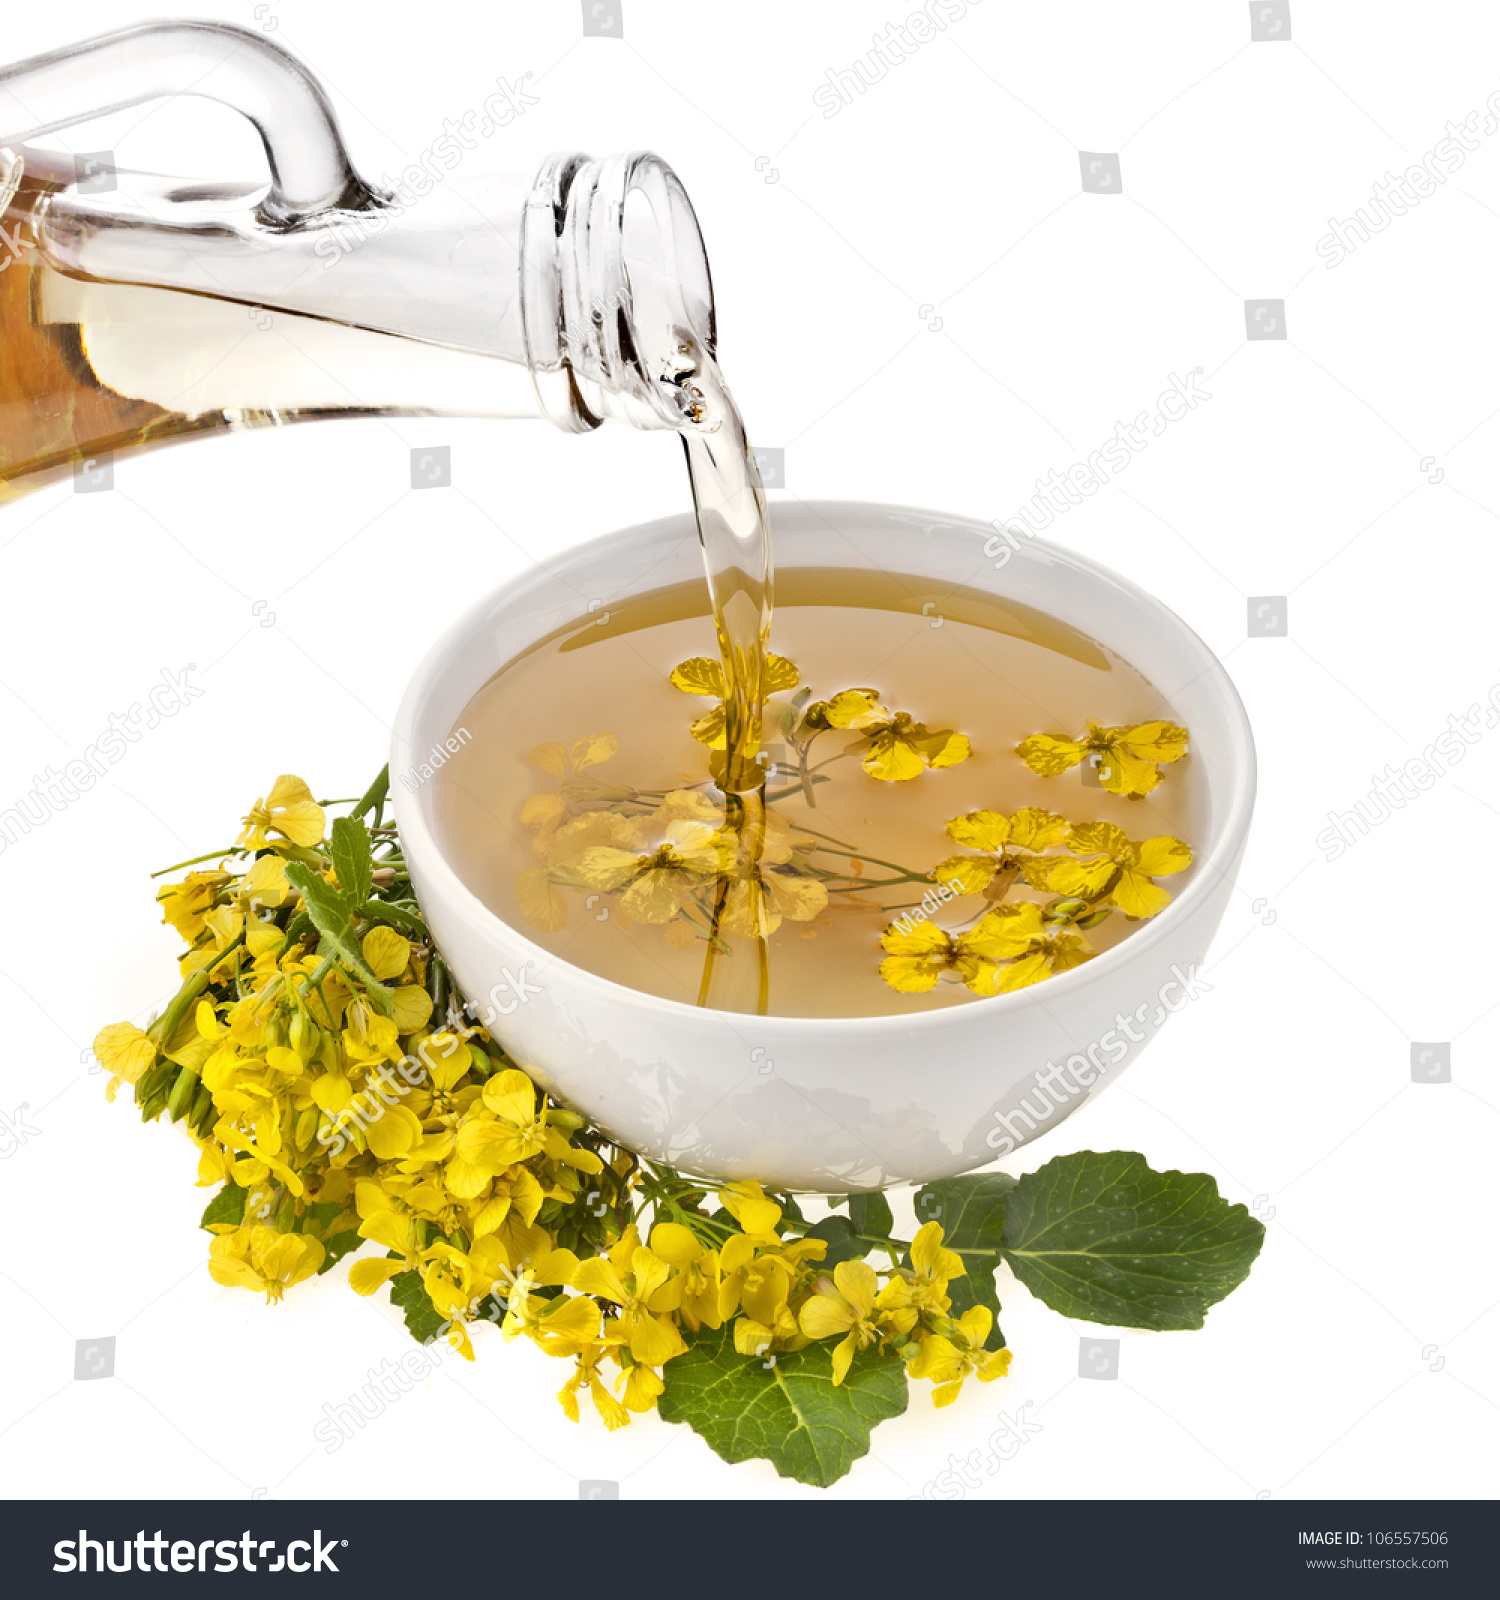 Mustard Oil Pour In A Bowl With Mustard Flower Bloom Isolated White Stock